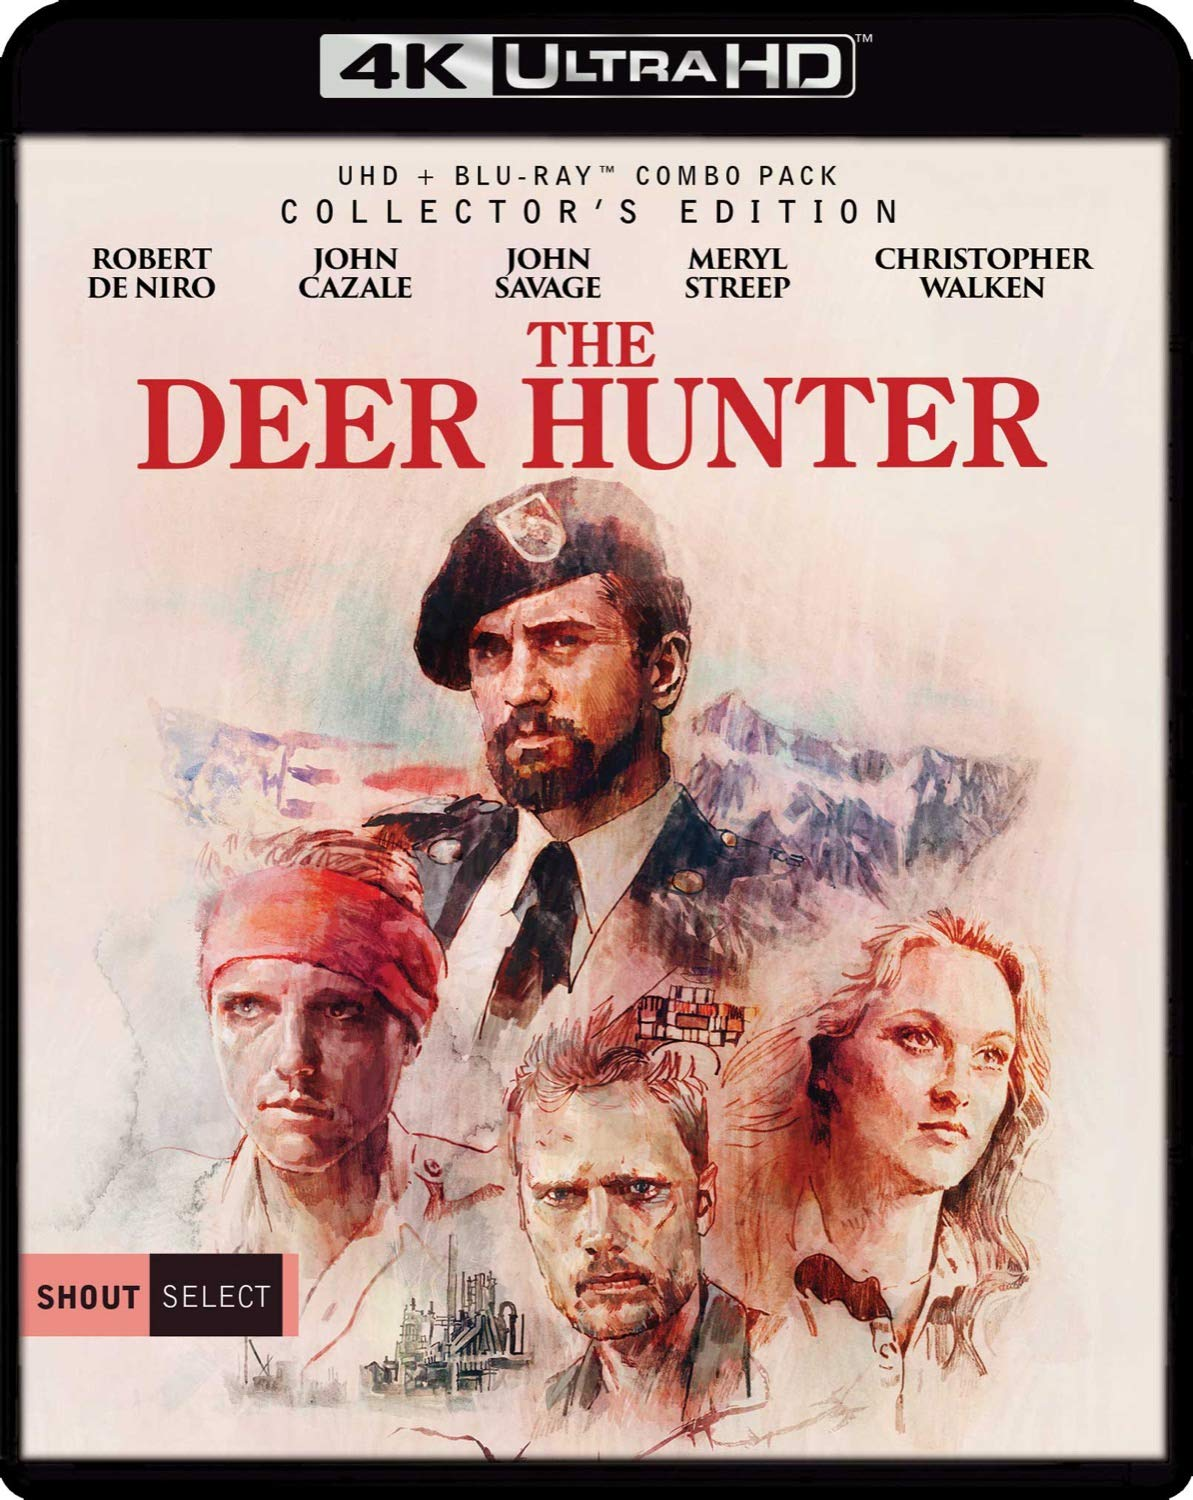 The Deer Hunter [USA] [Blu-ray]: Amazon.es: Niro, Robert de, Walken, Christopher, Savage, John, Cazale, John, Streep, Meryl, Dzundza, George, Aspegren, Chuck, Cimino, Michael, Niro, Robert de, Walken, Christopher: Cine y Series TV